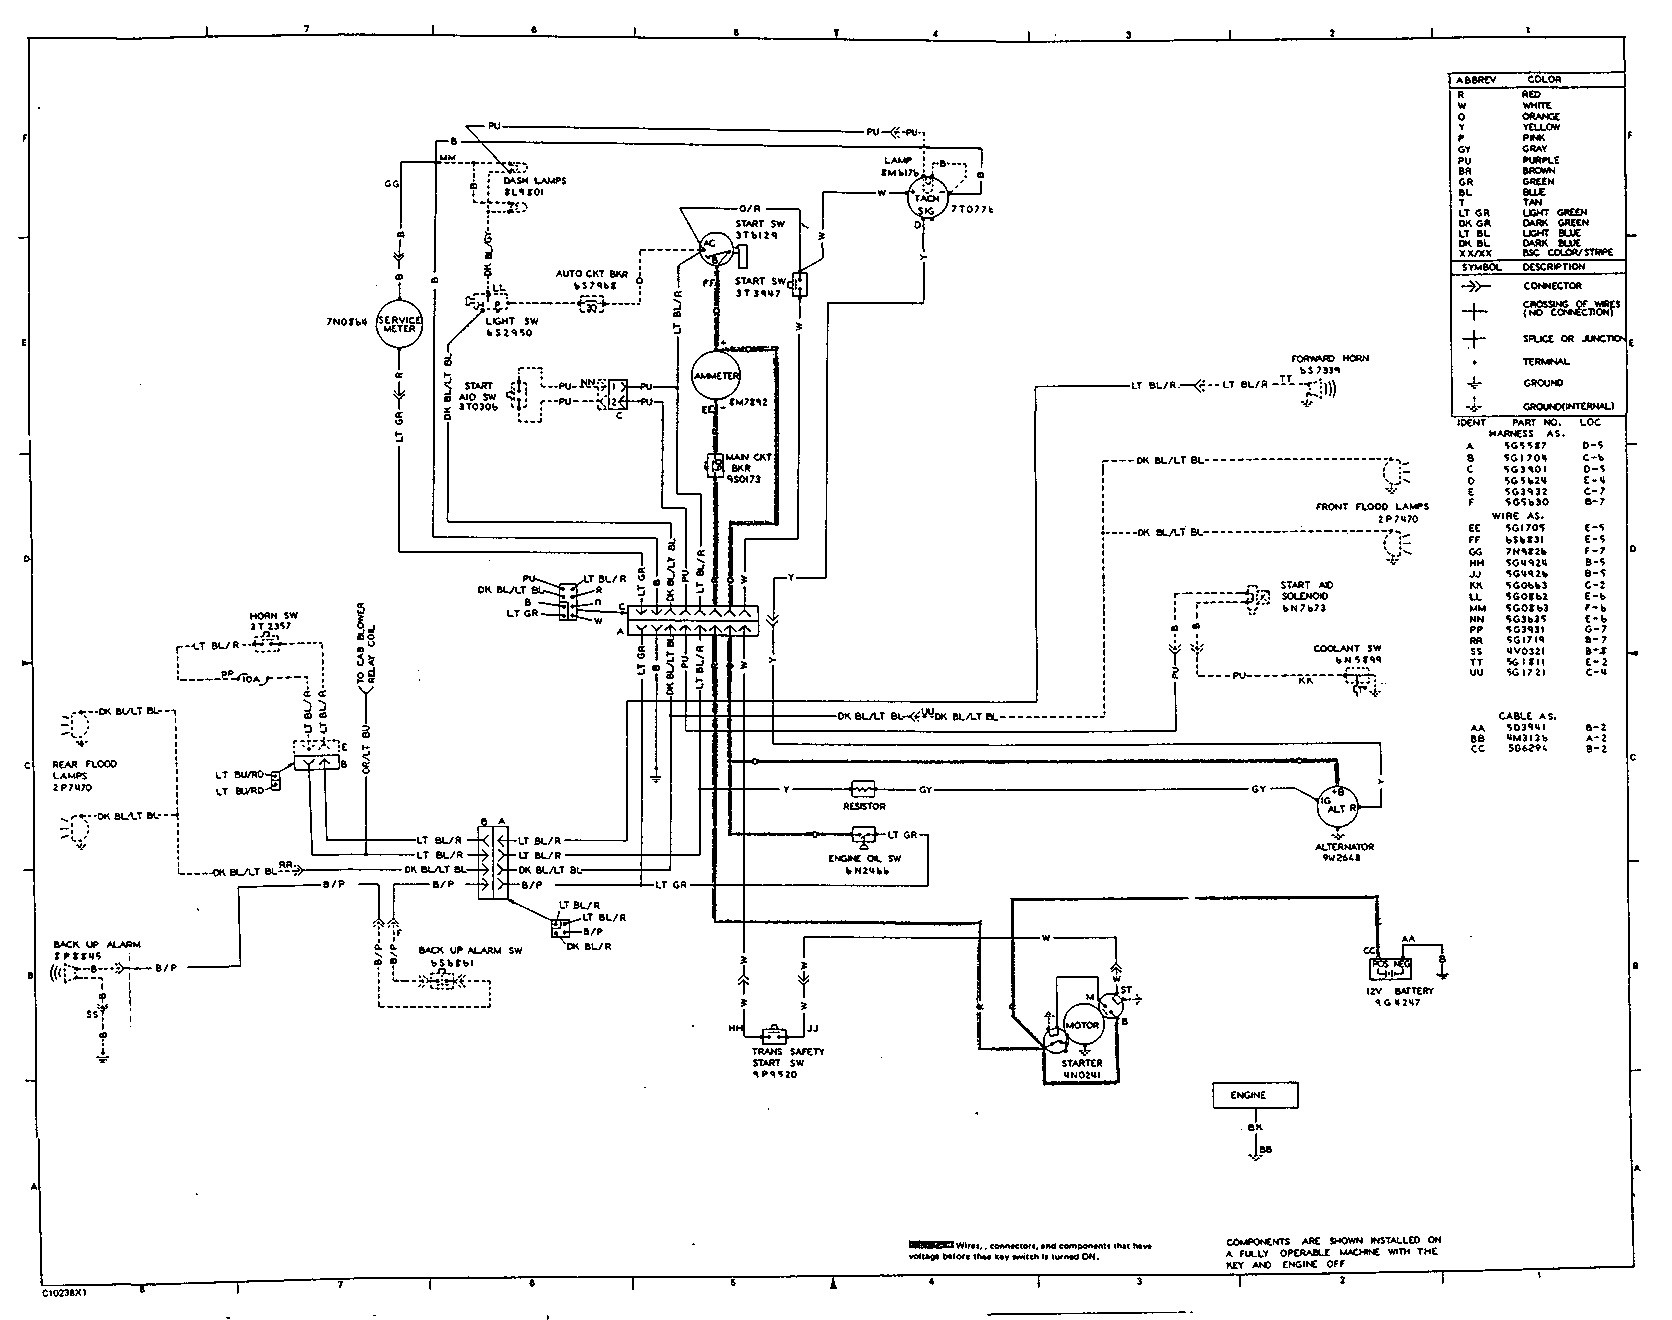 Diesel Engine Starter Wiring Diagram Motor Starter Circuit Diagram ...